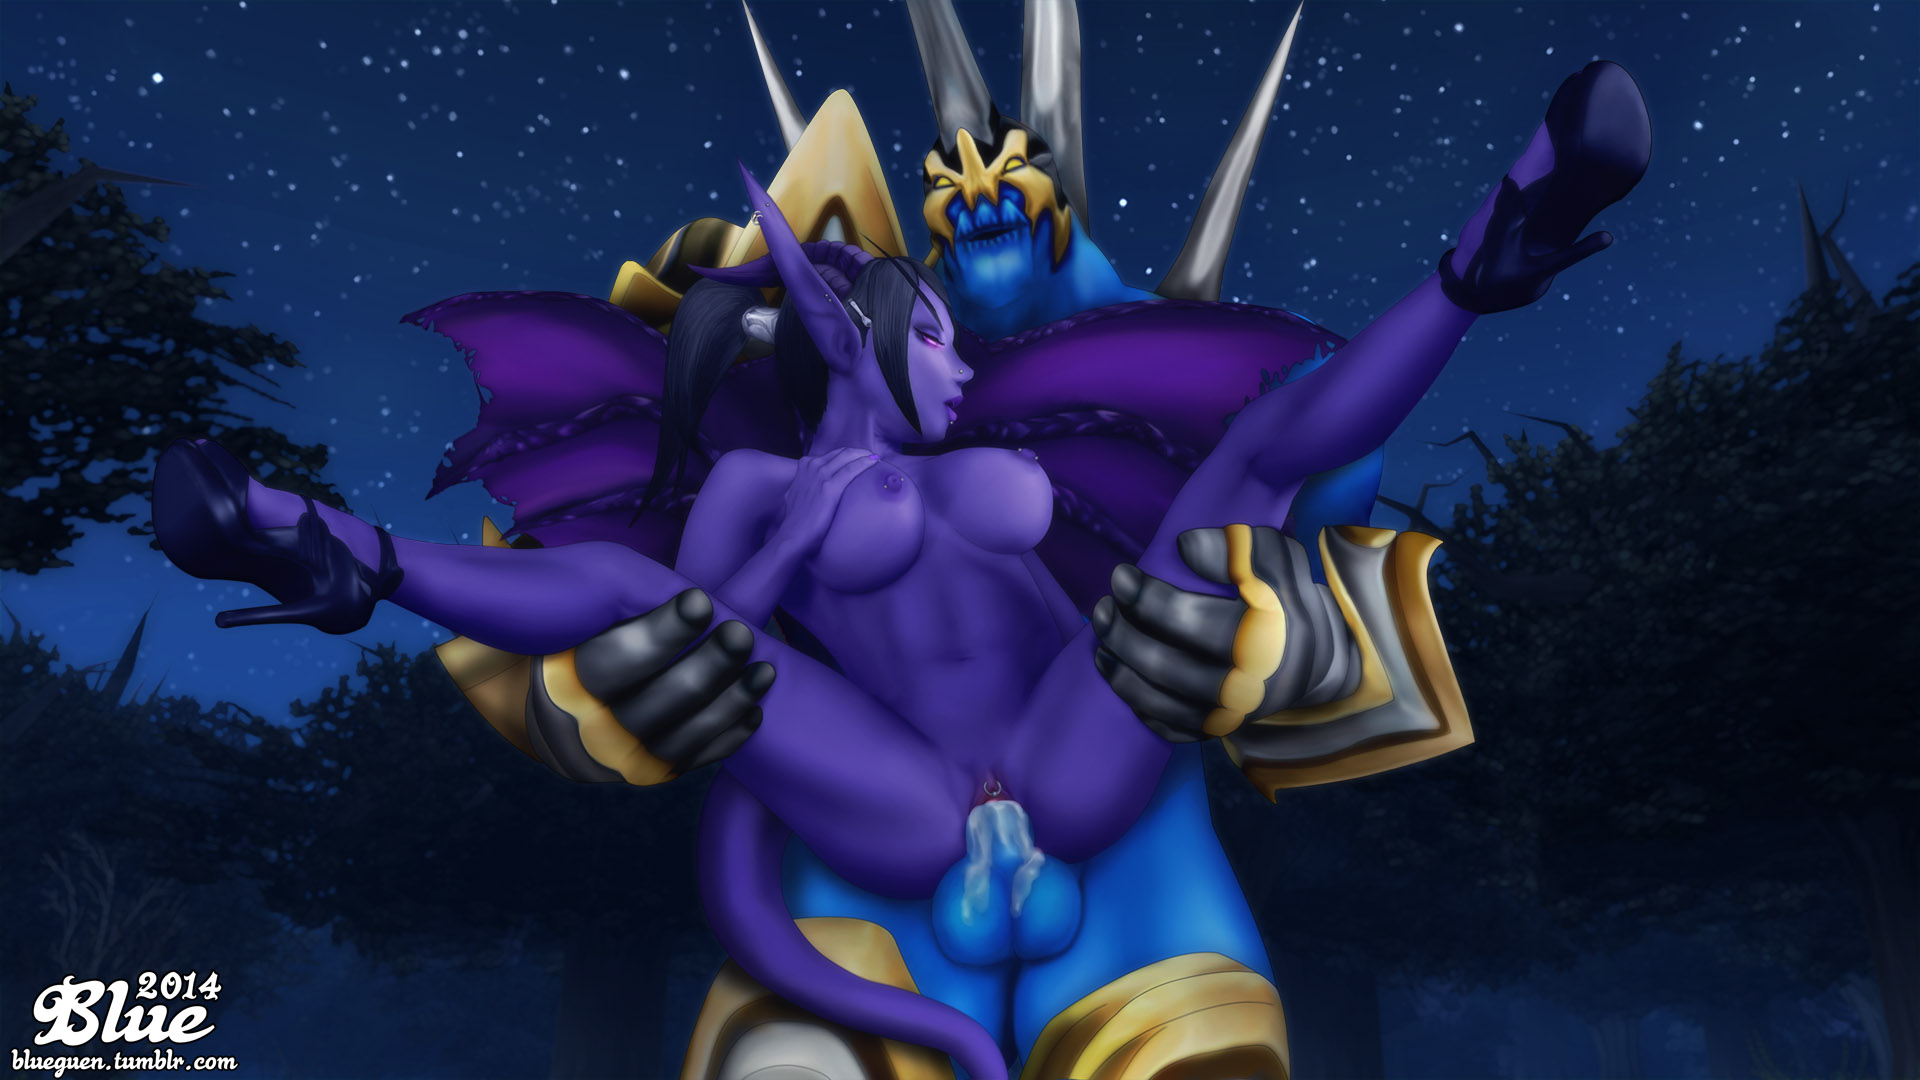 Sexy items in world of warcraft nsfw pics